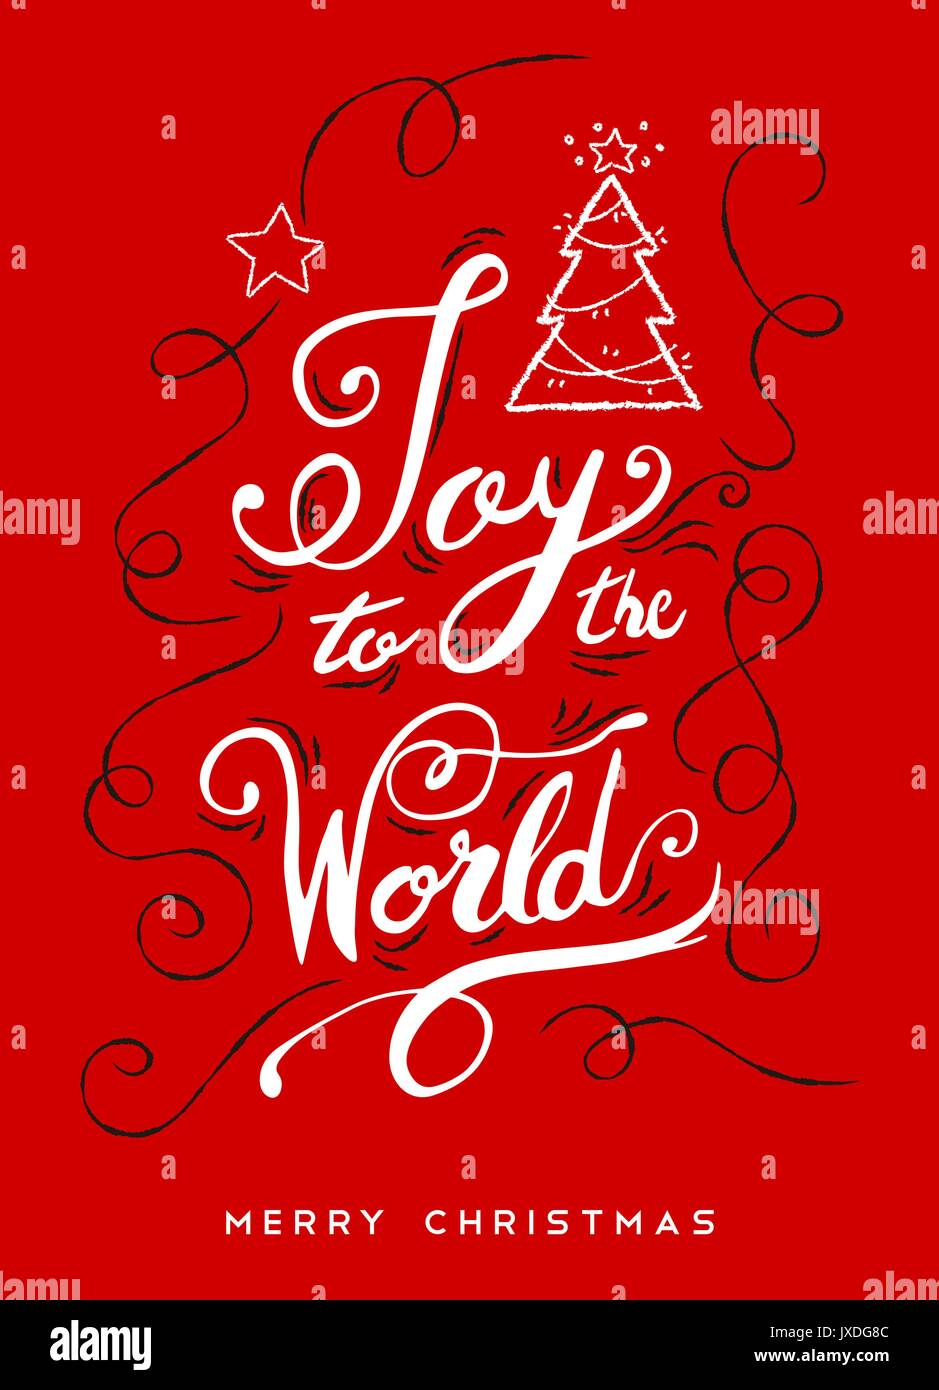 Joy to the world christmas calligraphy quote ornamental text design joy to the world christmas calligraphy quote ornamental text design for holiday season creative vintage typography font illustration eps10 vector m4hsunfo